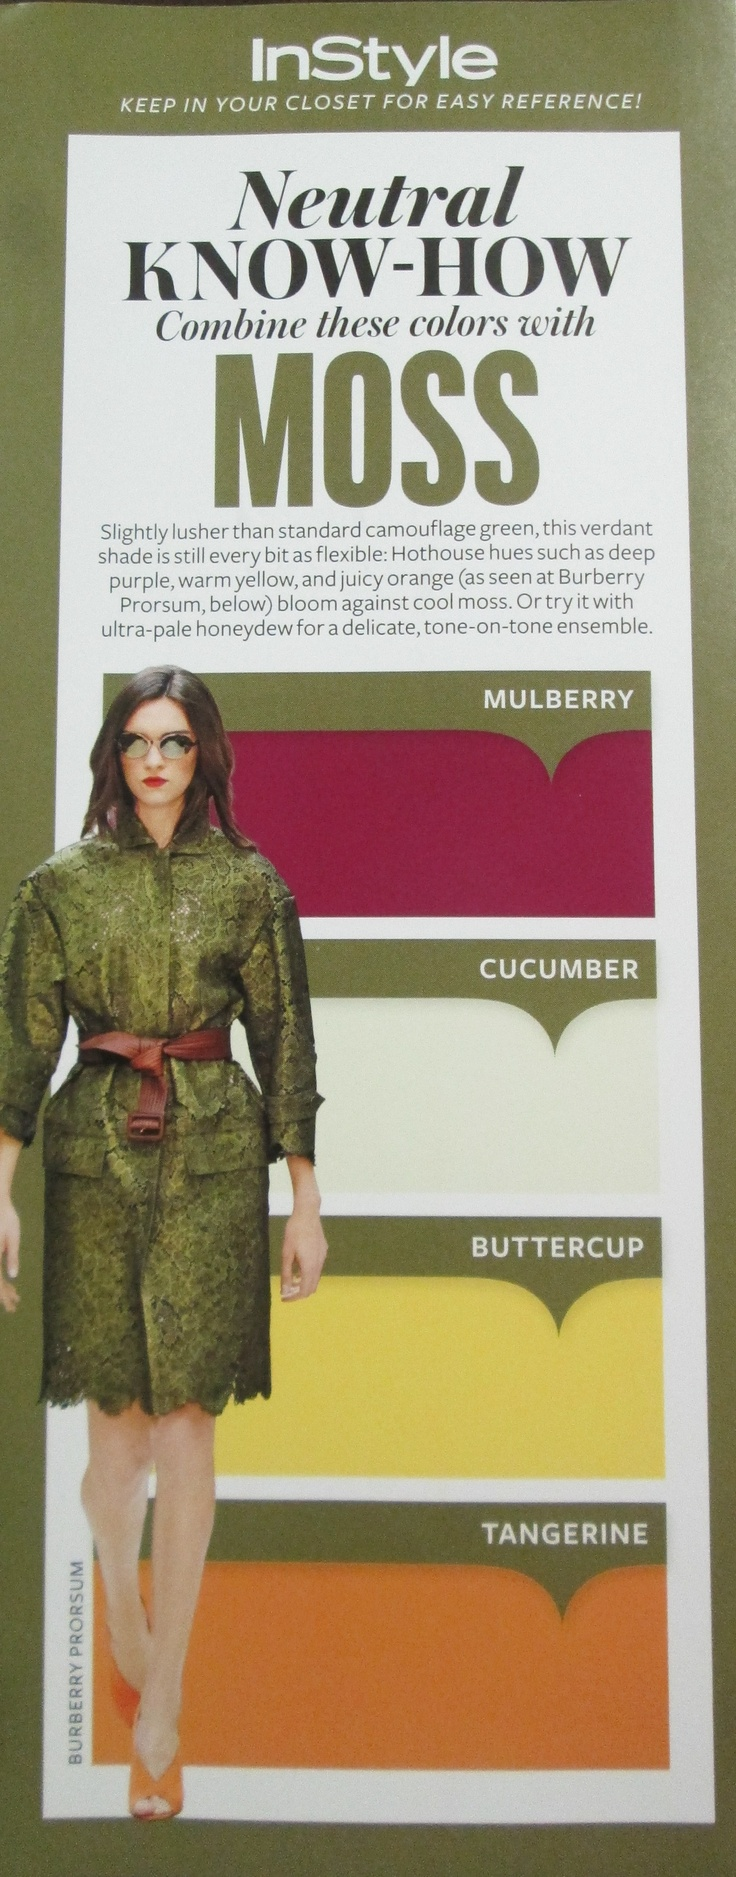 Color blocking - Neutral Know-How for the color Moss